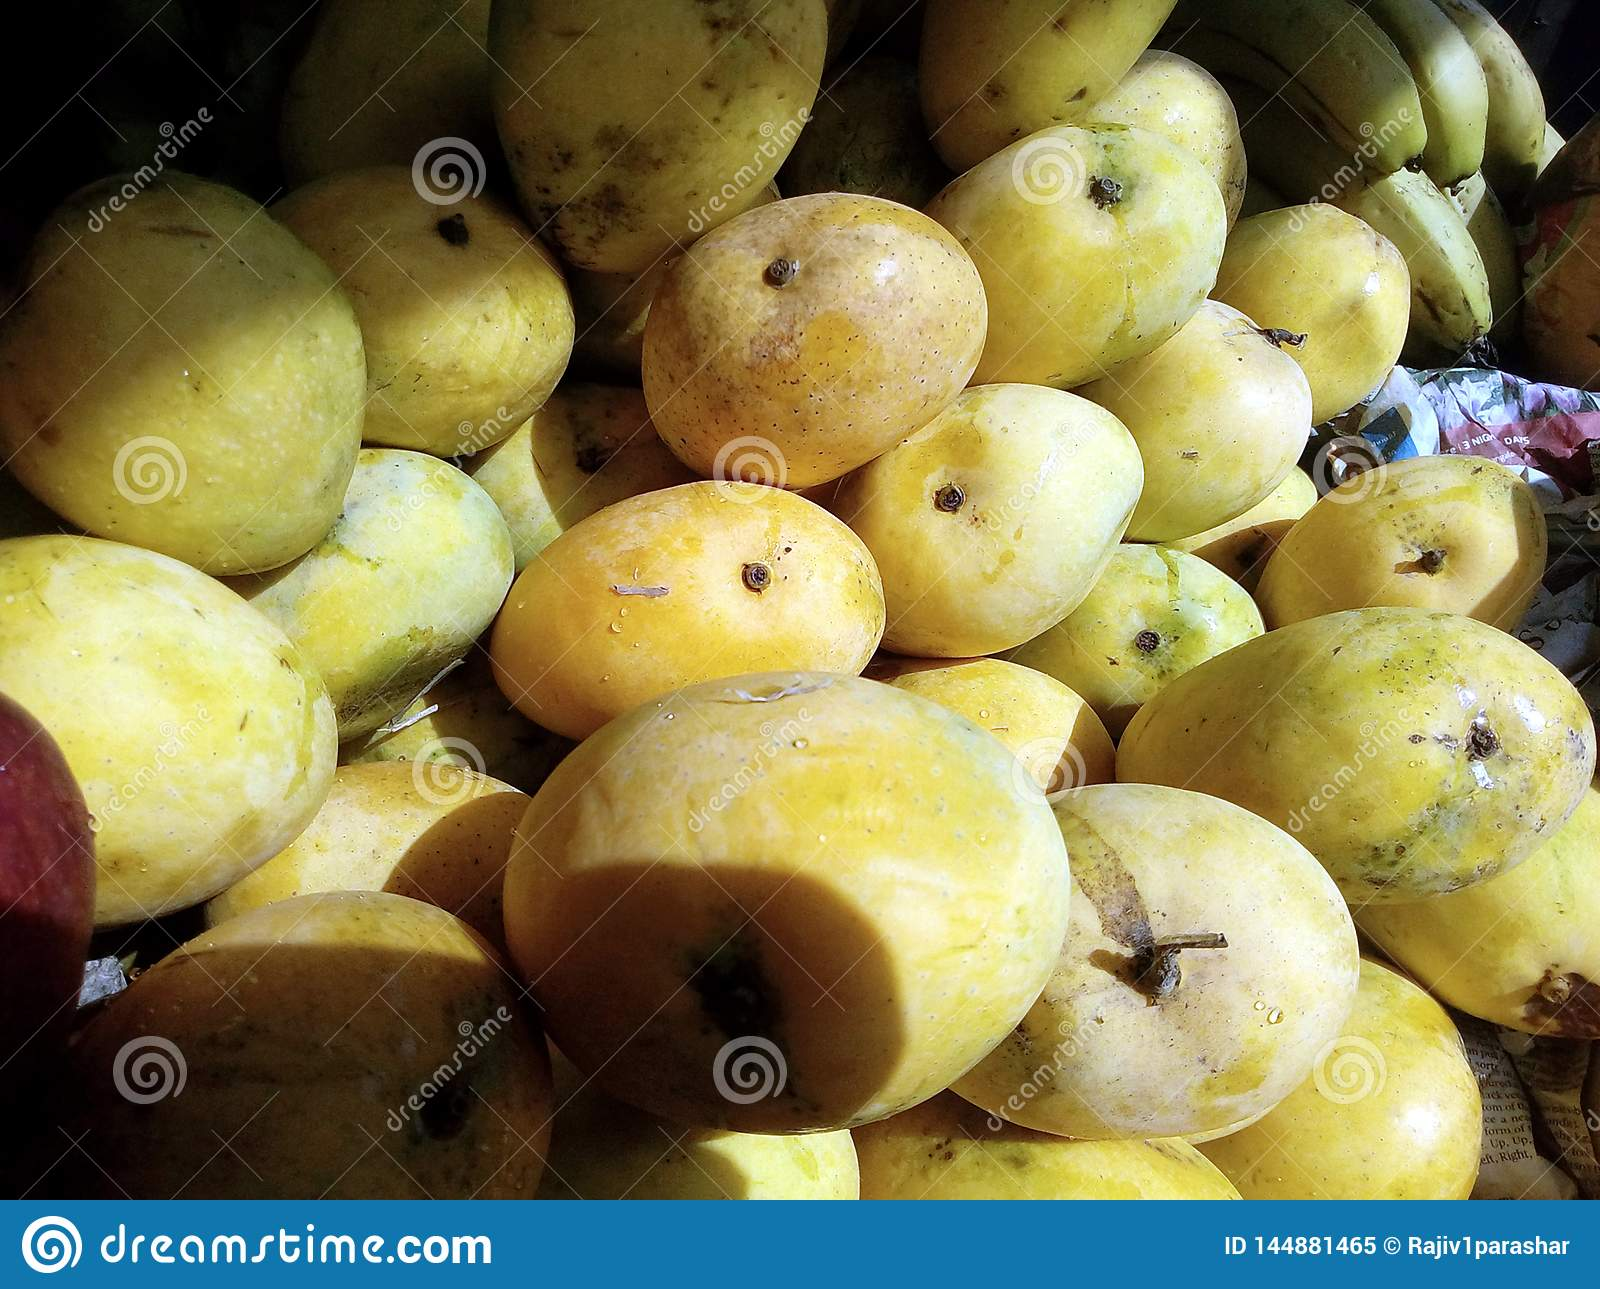 This is the image of yellow mango with some banana